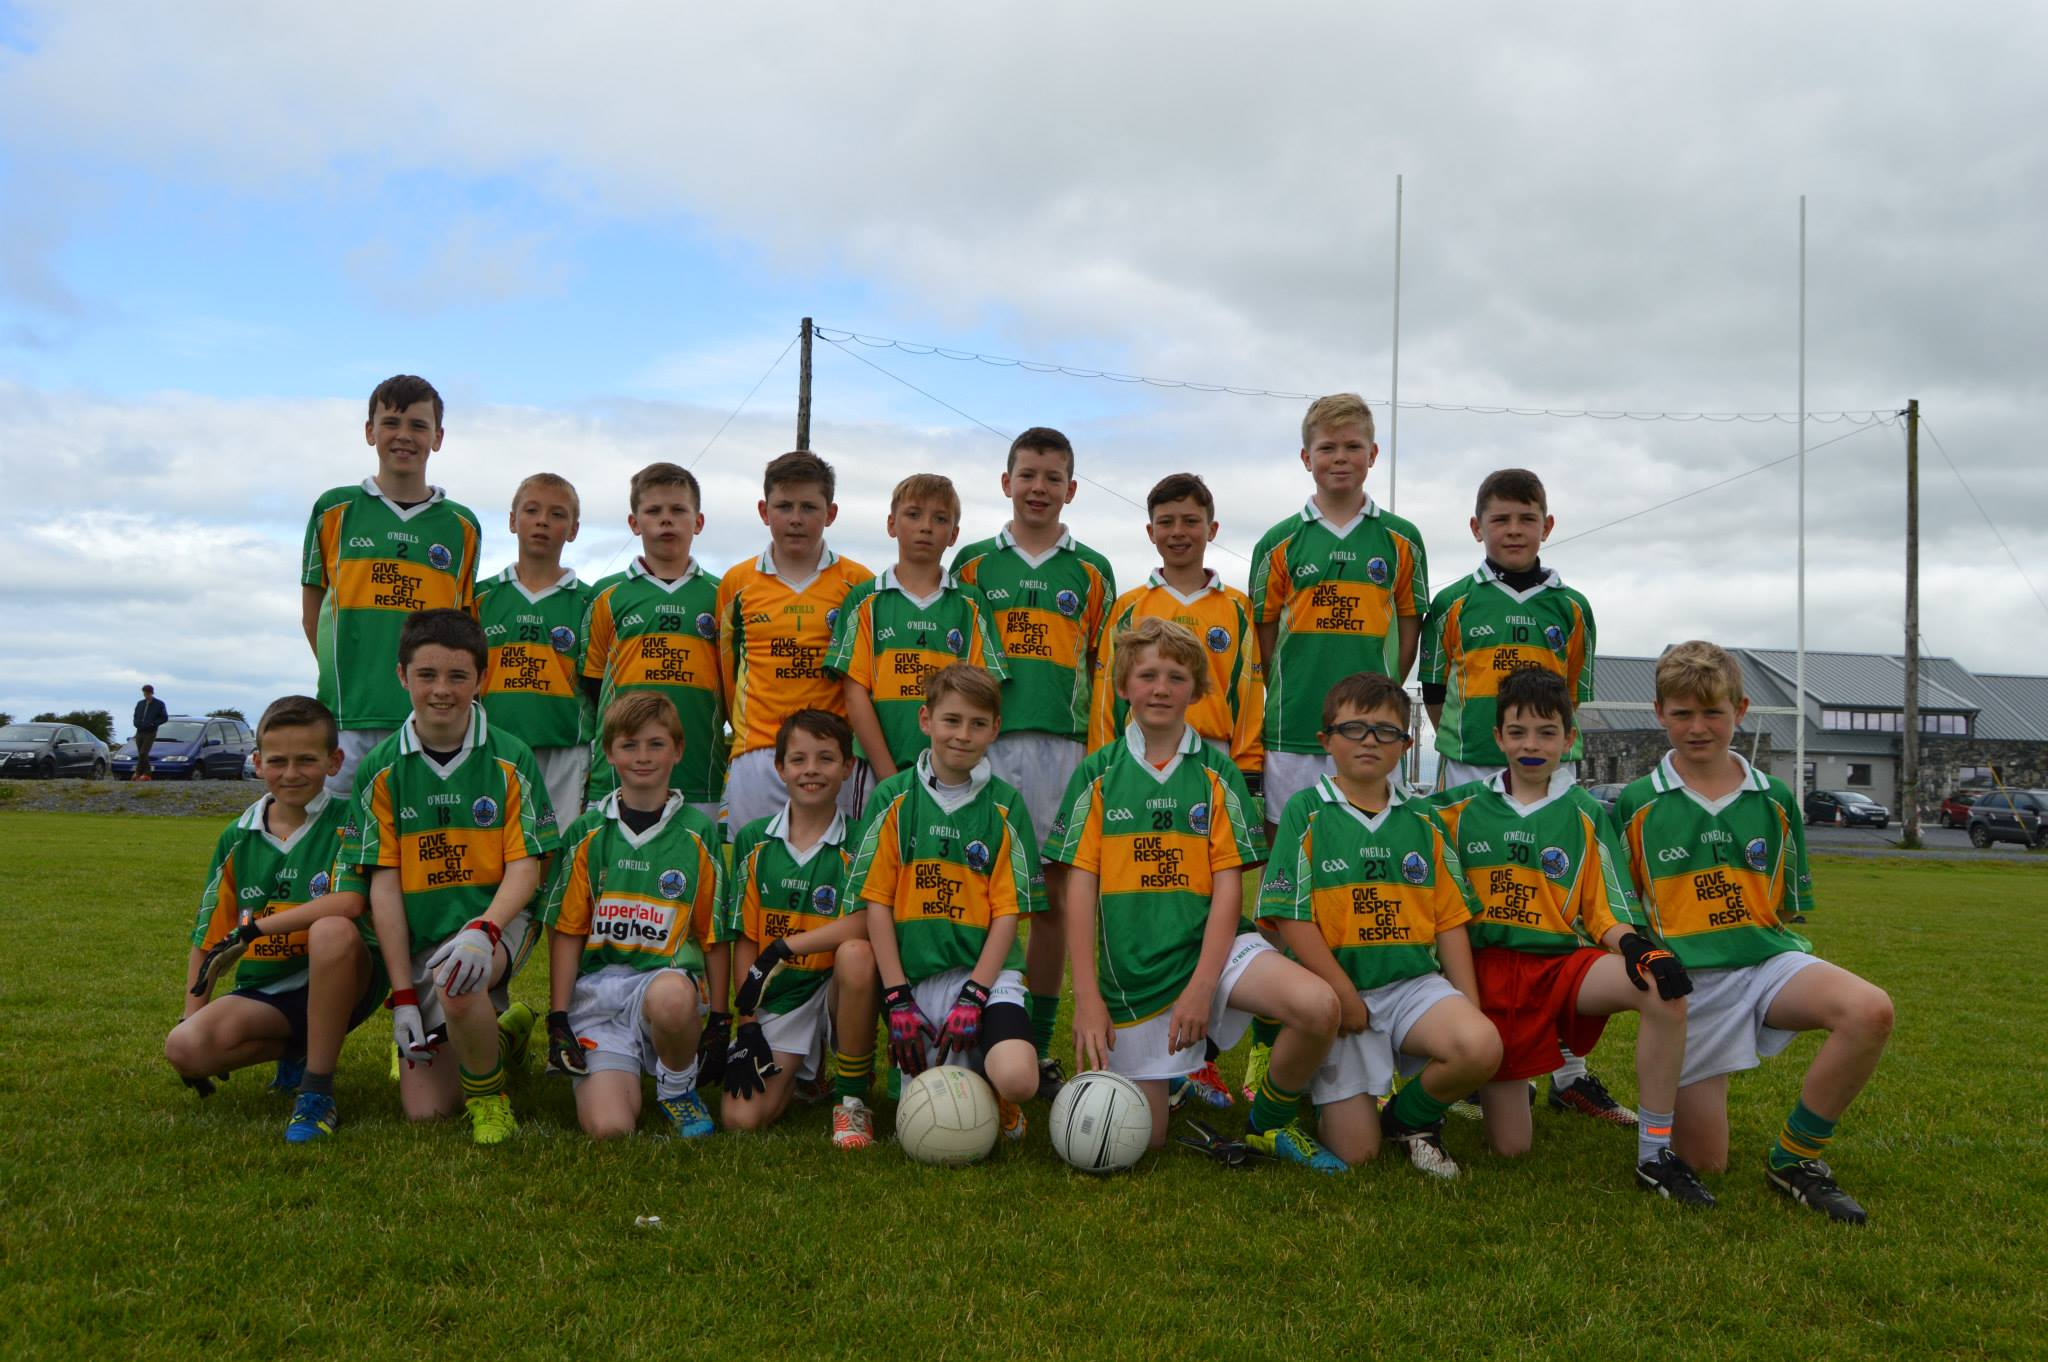 Claregalway Football Club U12s during a friendly game with Monivea Abbey last Sunday at Knockdoemore Park.